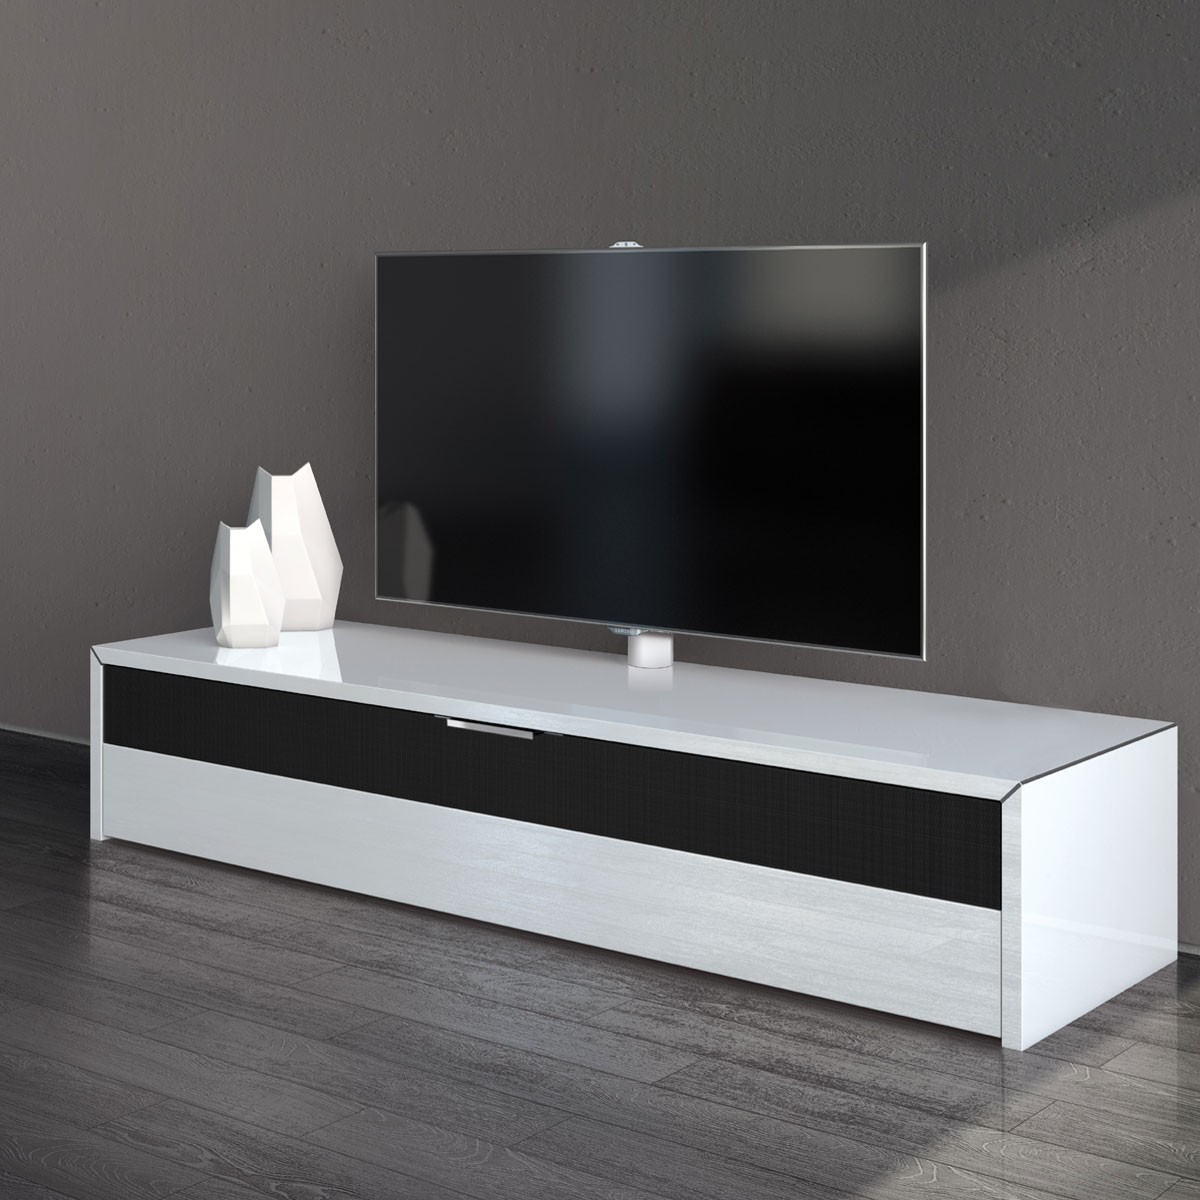 geschlossene tv m bel archive seite 2 von 3 tv m bel. Black Bedroom Furniture Sets. Home Design Ideas